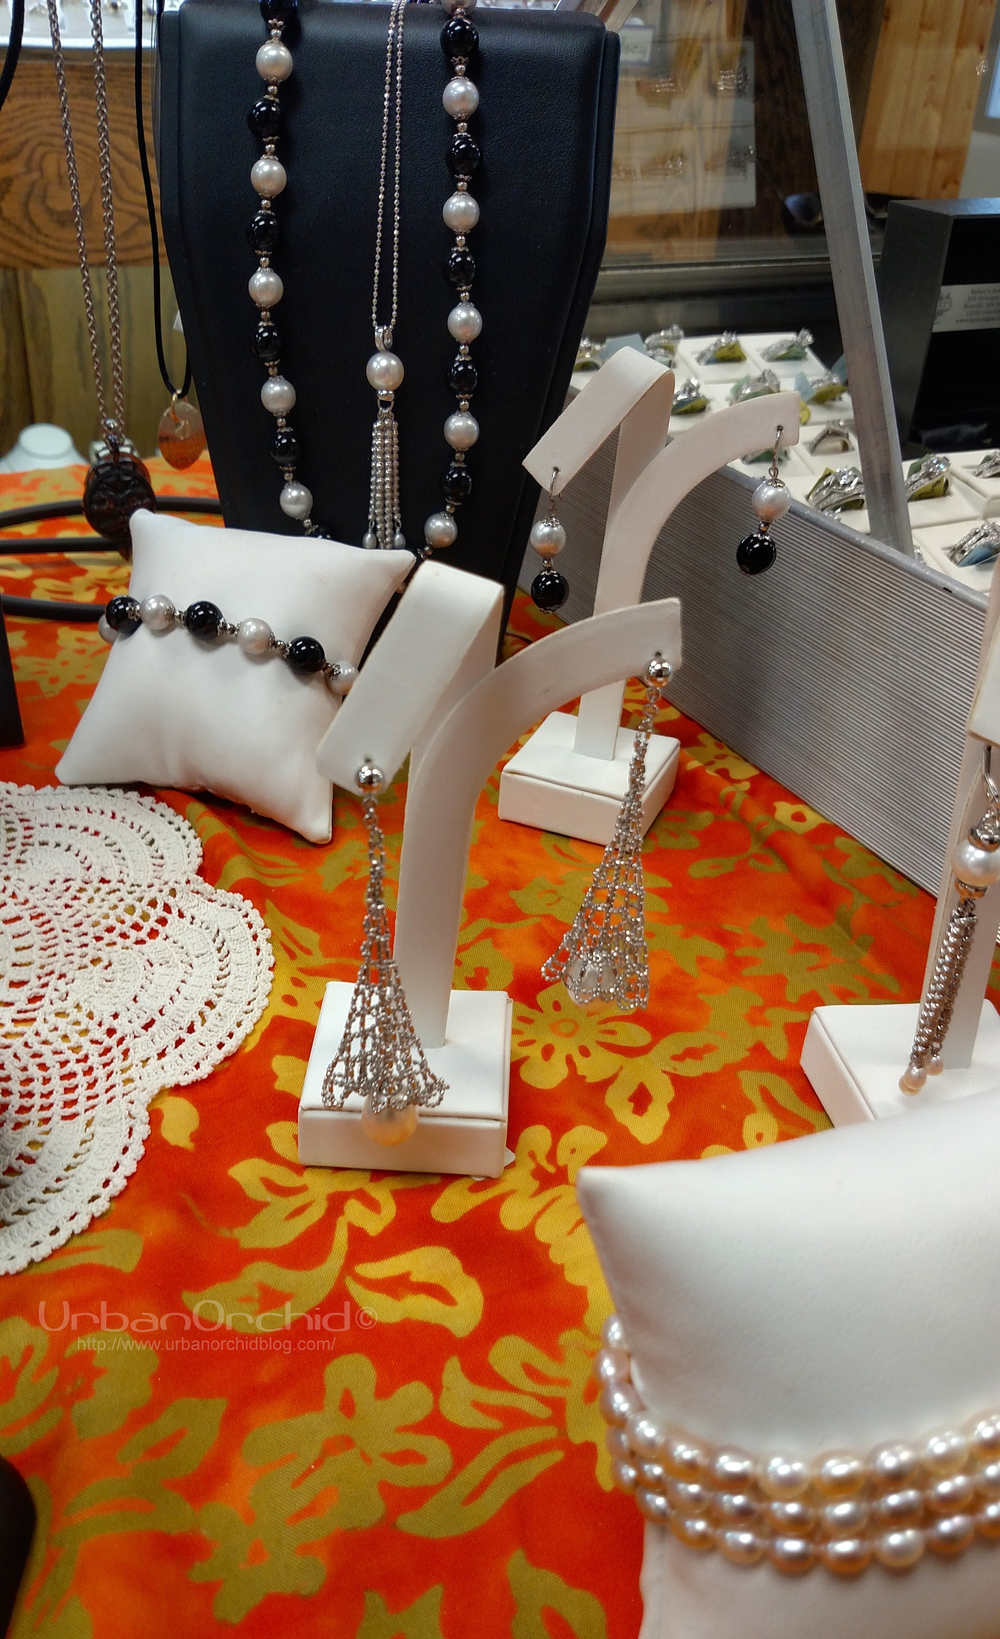 Pearl jewelry on the sales table.  Love the beaded structure on those earrings.